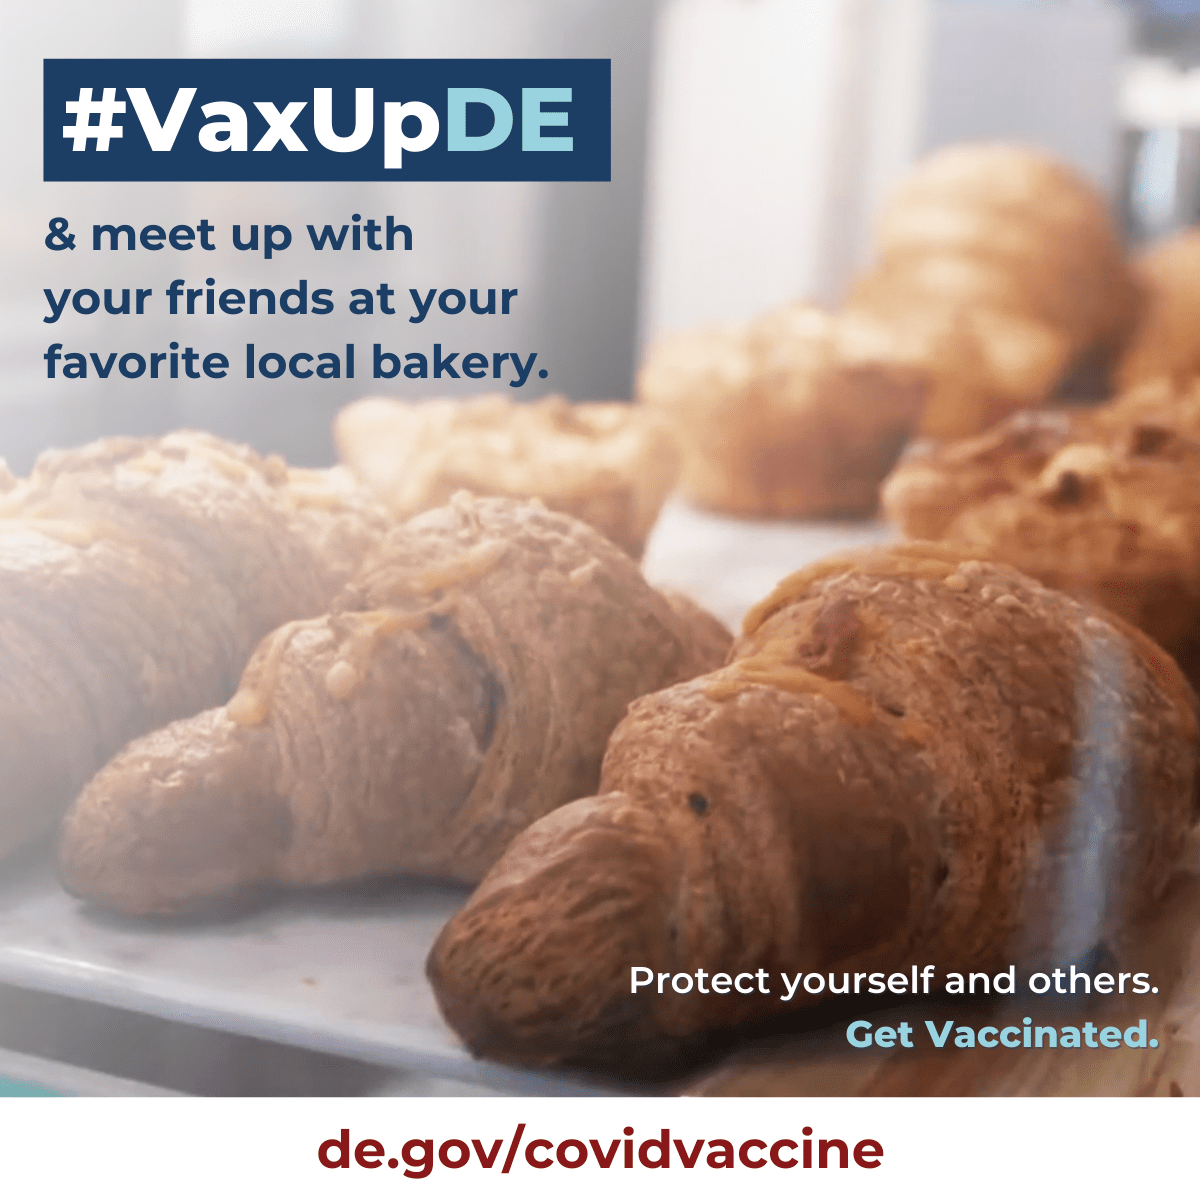 VaxUpDE Protect yourself and others. Get vaccinated. A croissant from a local Delaware coffee shop is shown.